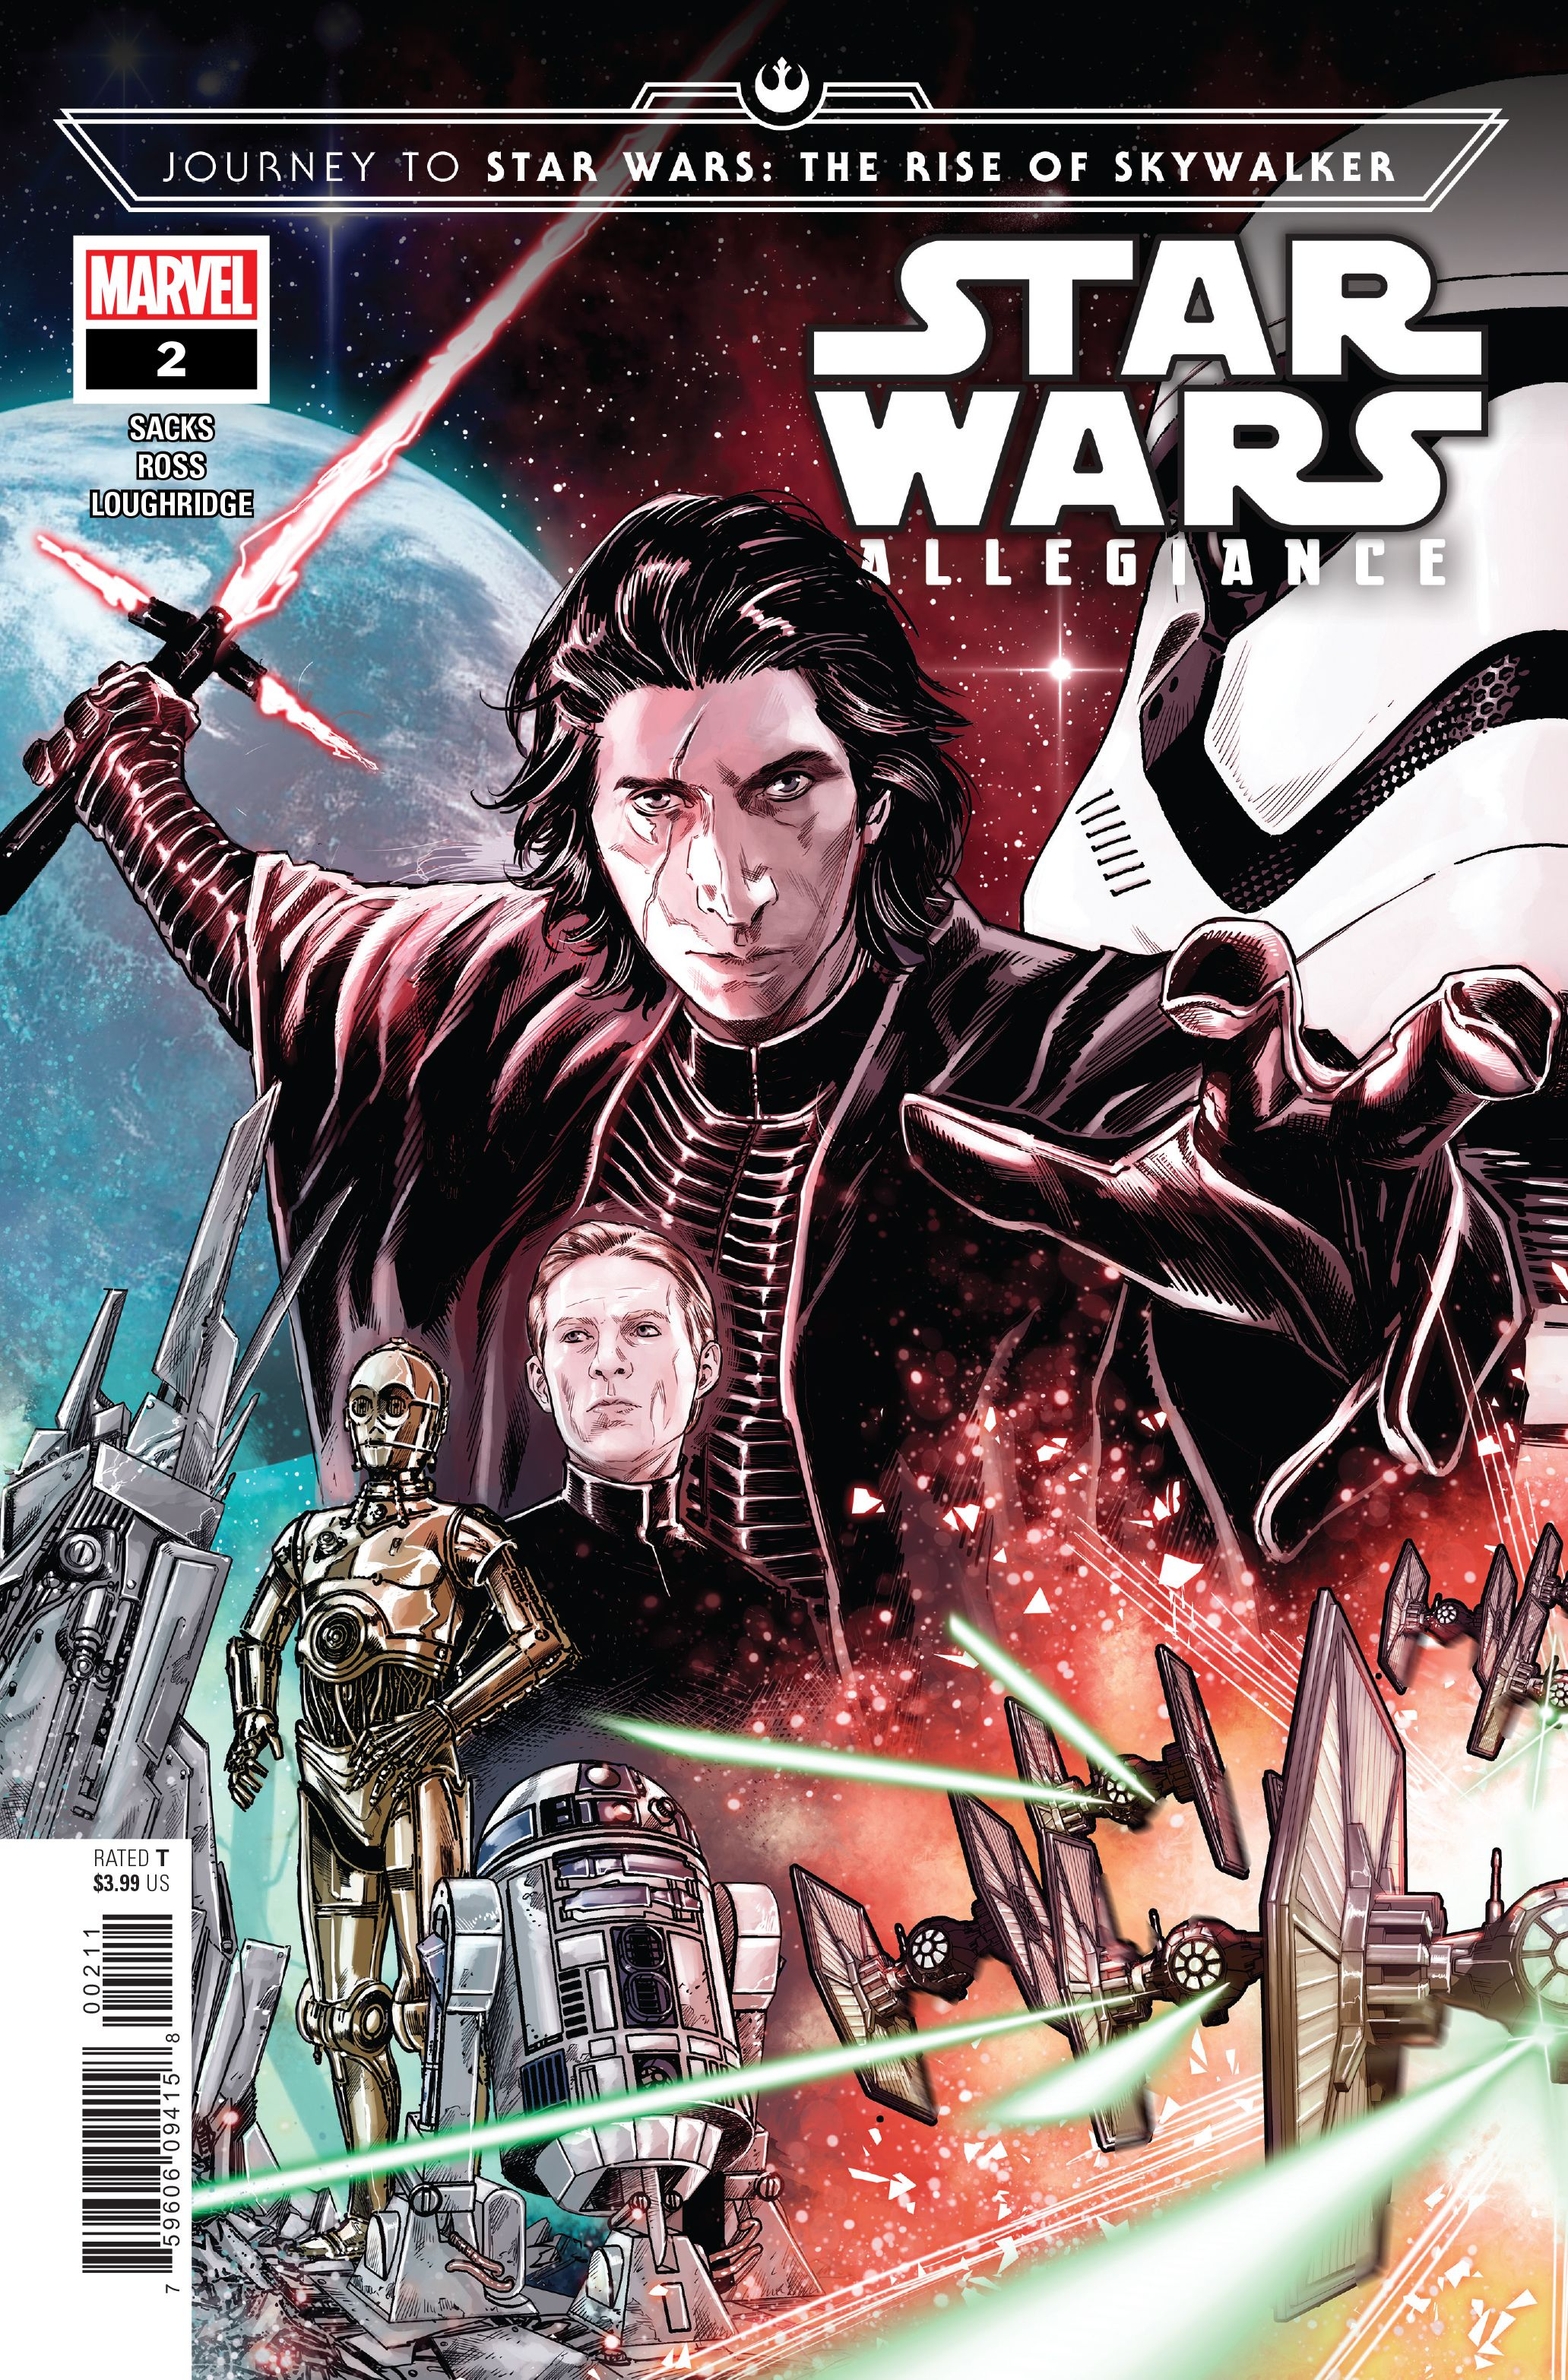 PREVIEW: Journey to Star Wars: The Rise of Skywalker - Allegiance #2